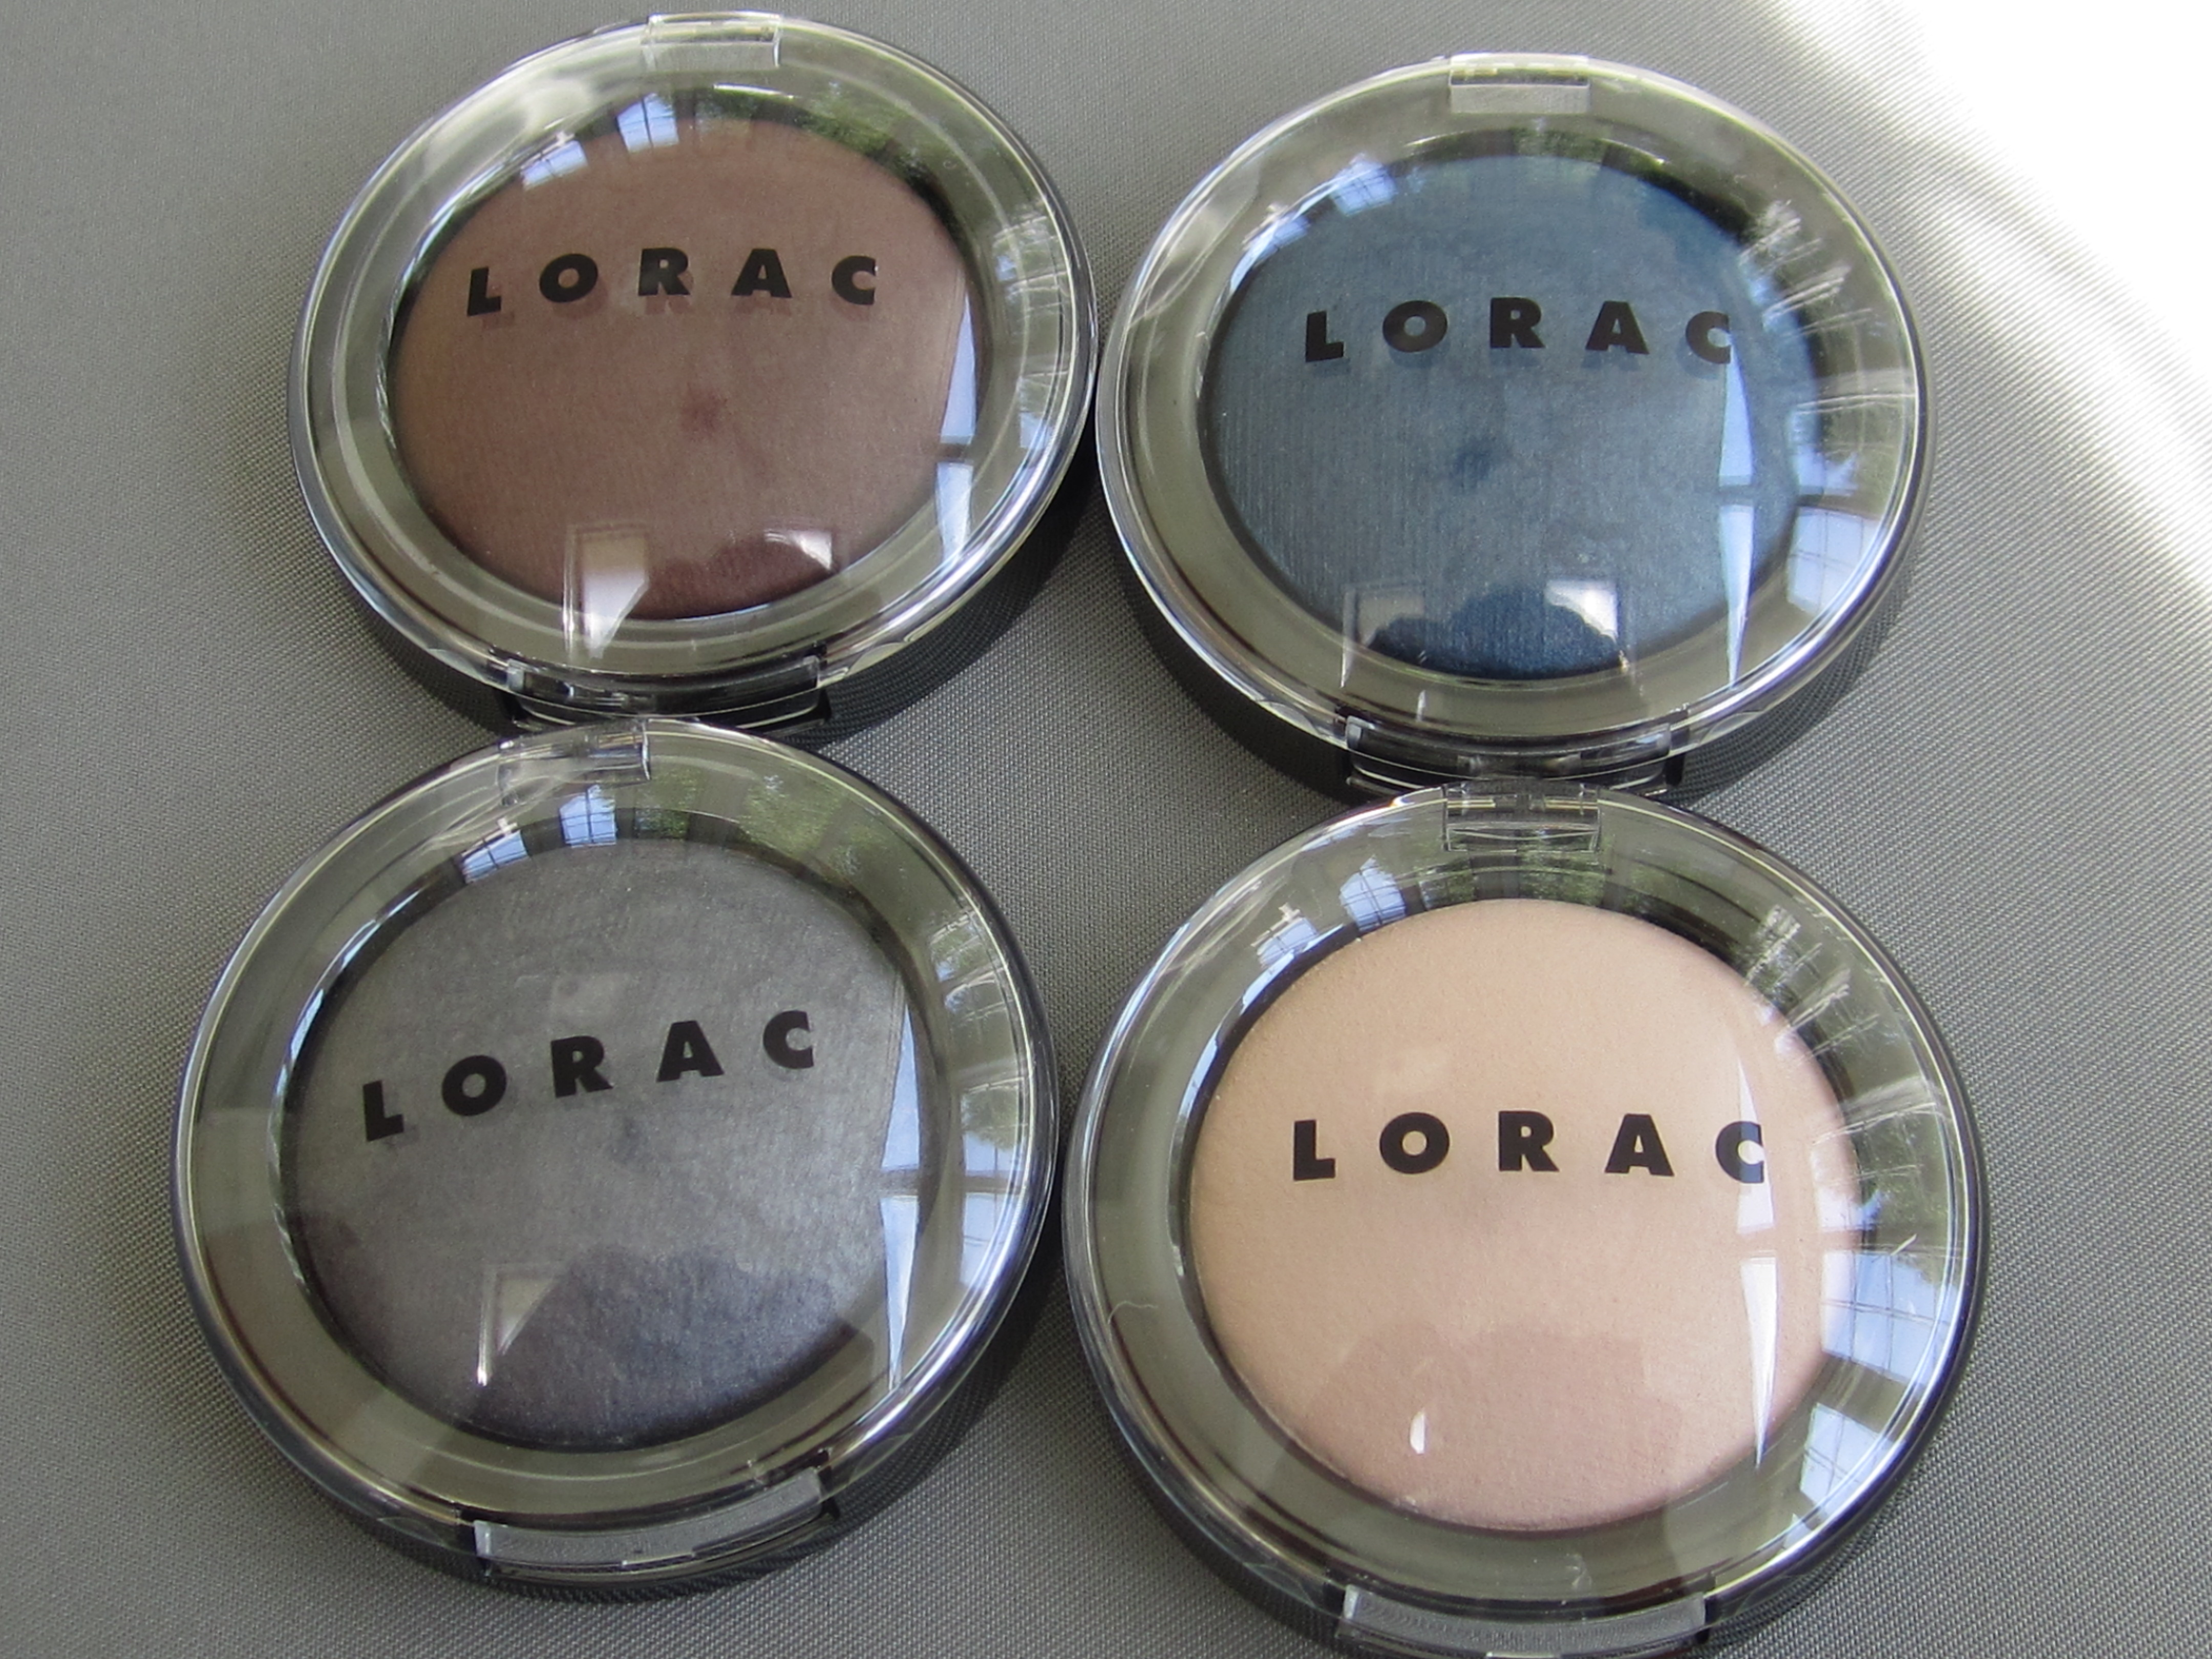 Shop for Lorac at Ulta Beauty. skip to main content. FREE STANDARD SHIPPING on any $50 purchase.